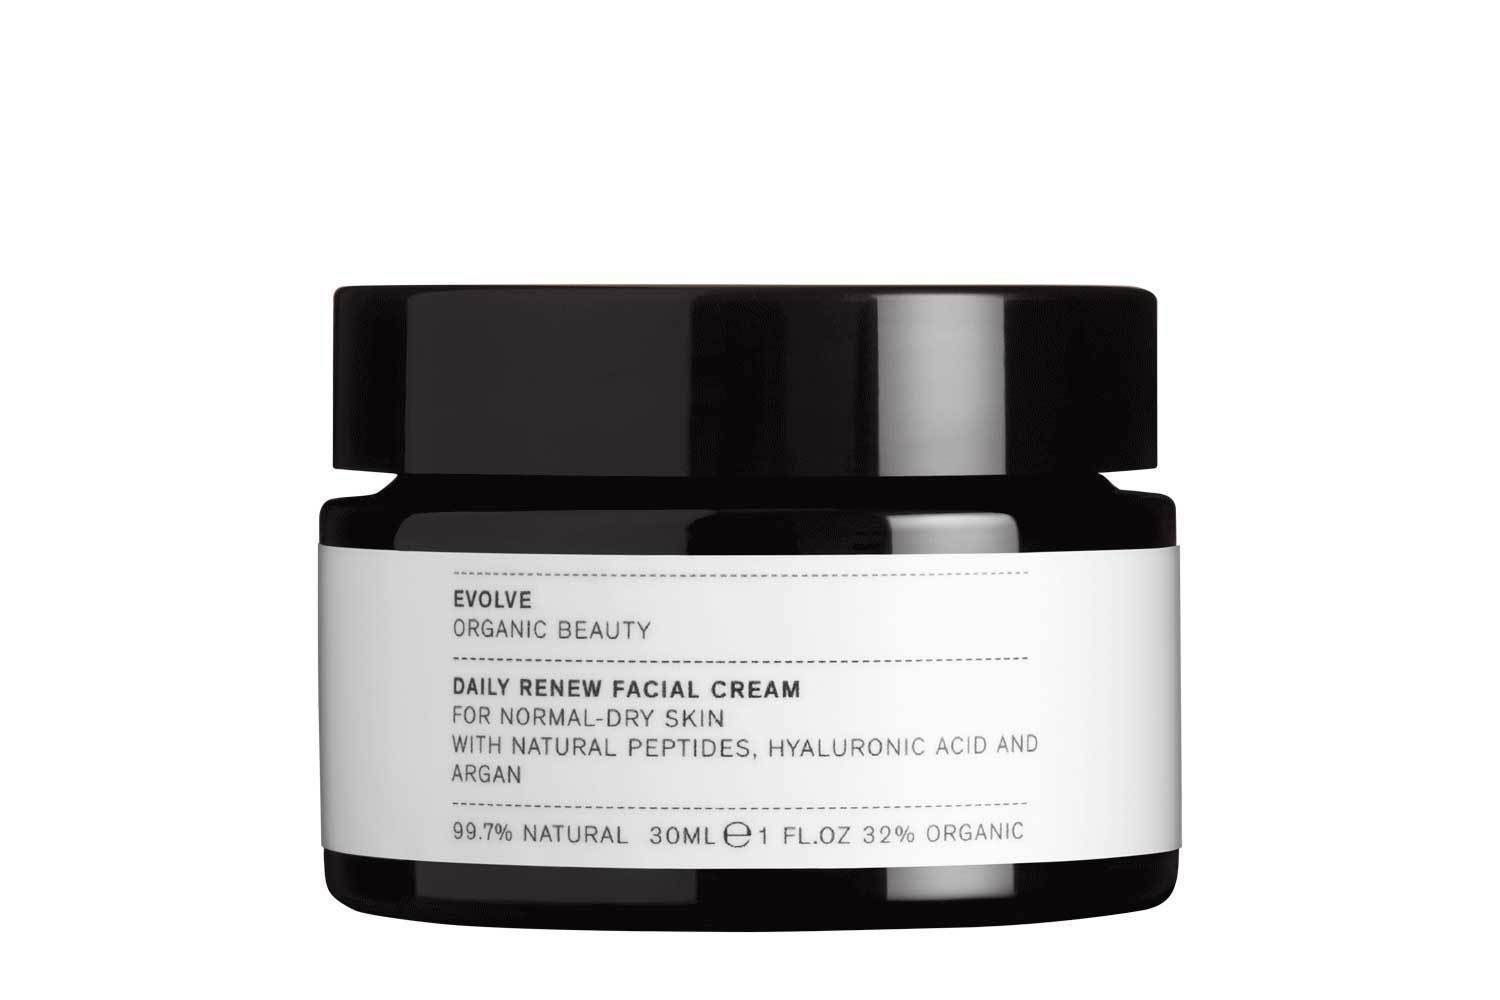 Evolve Daily Renew Facial Cream.jpg